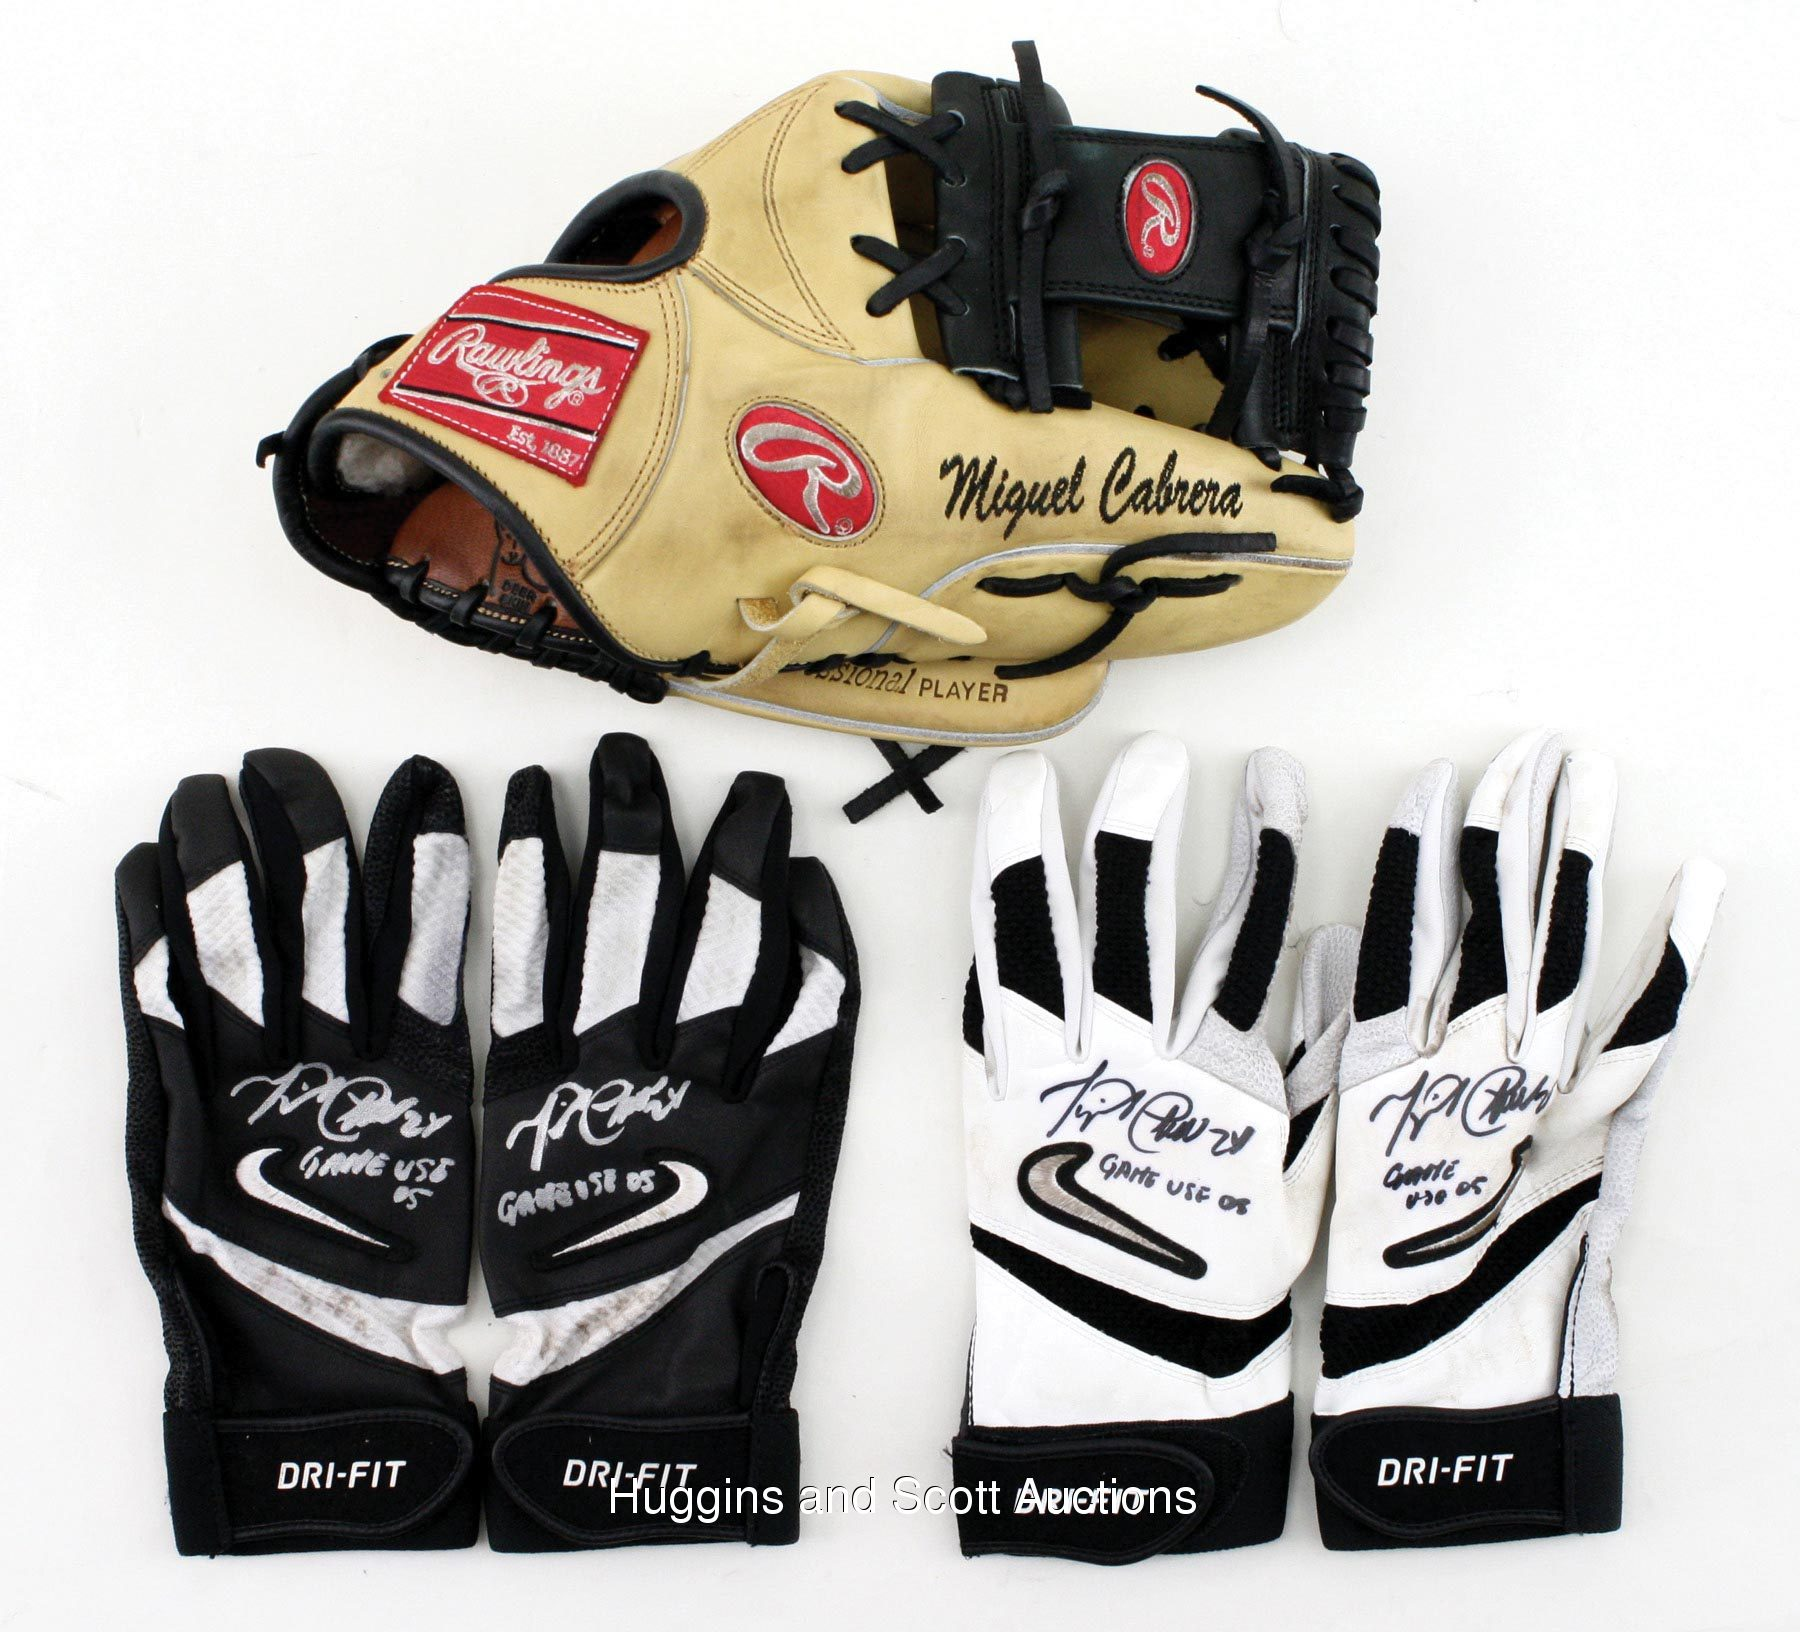 Miguel Cabrera Batting Gloves | www.imgkid.com - The Image ...